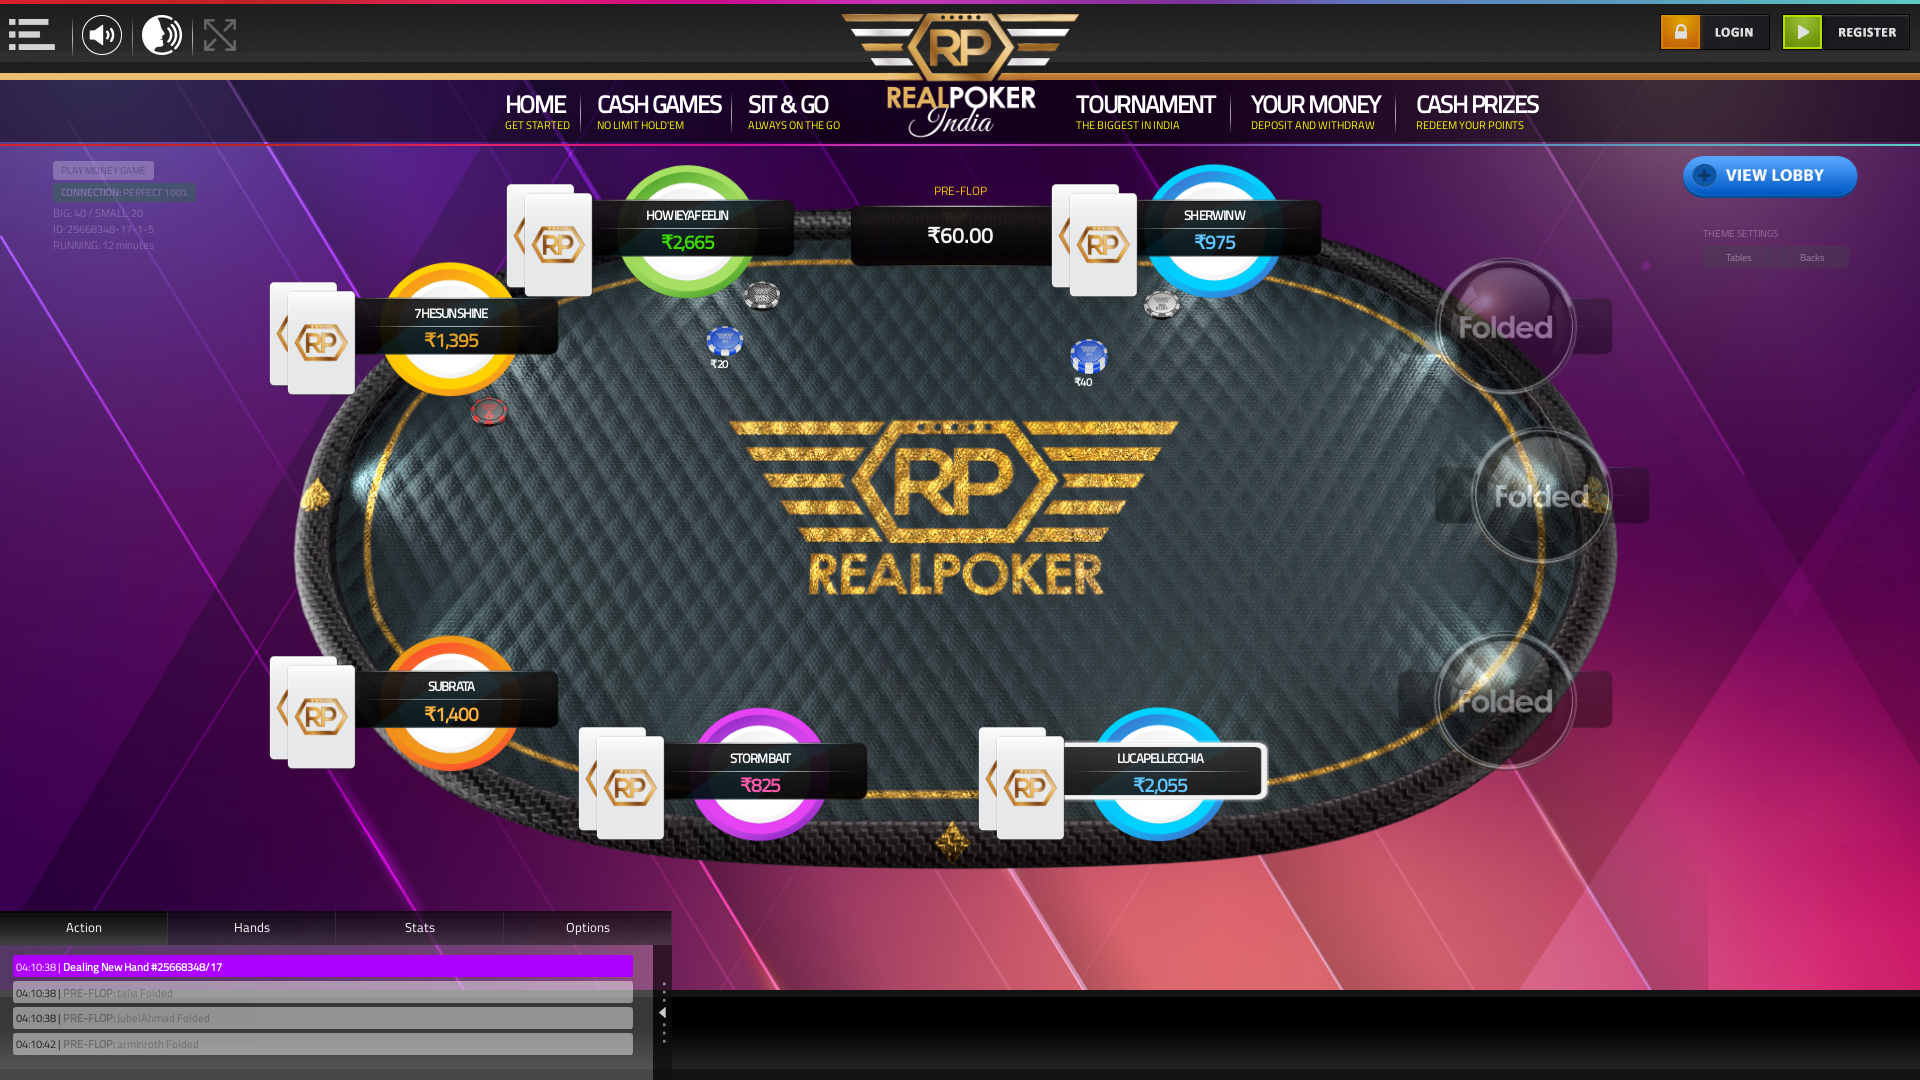 Gwalior Play Poker from 26th September